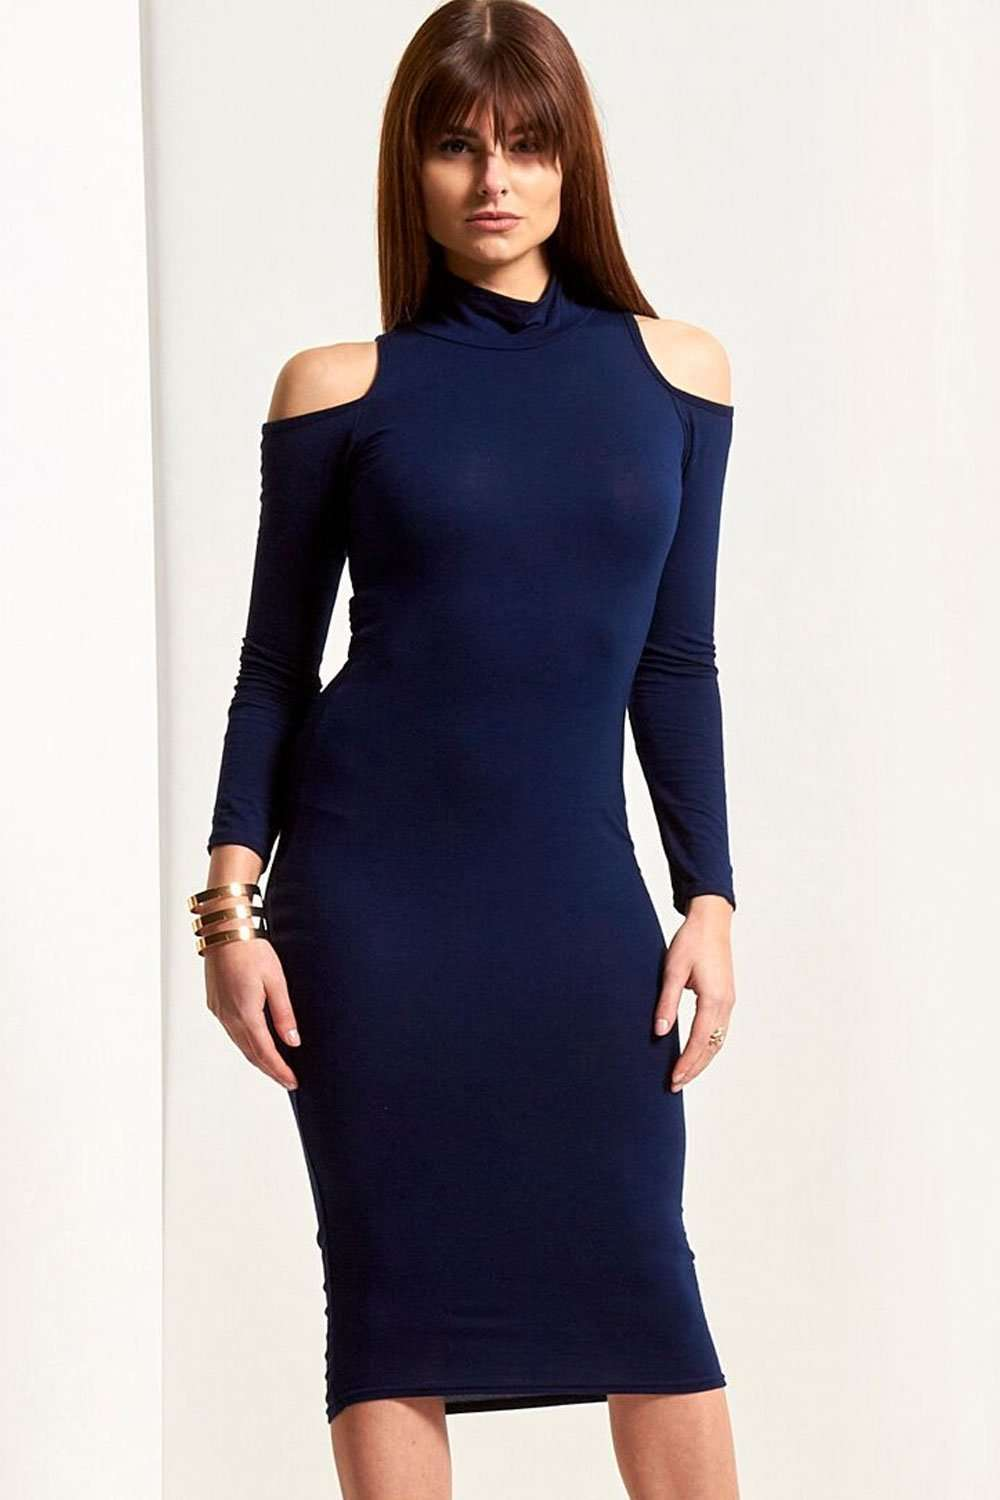 Sally Cold Shoulder Midi Bodycon Dress - bejealous-com